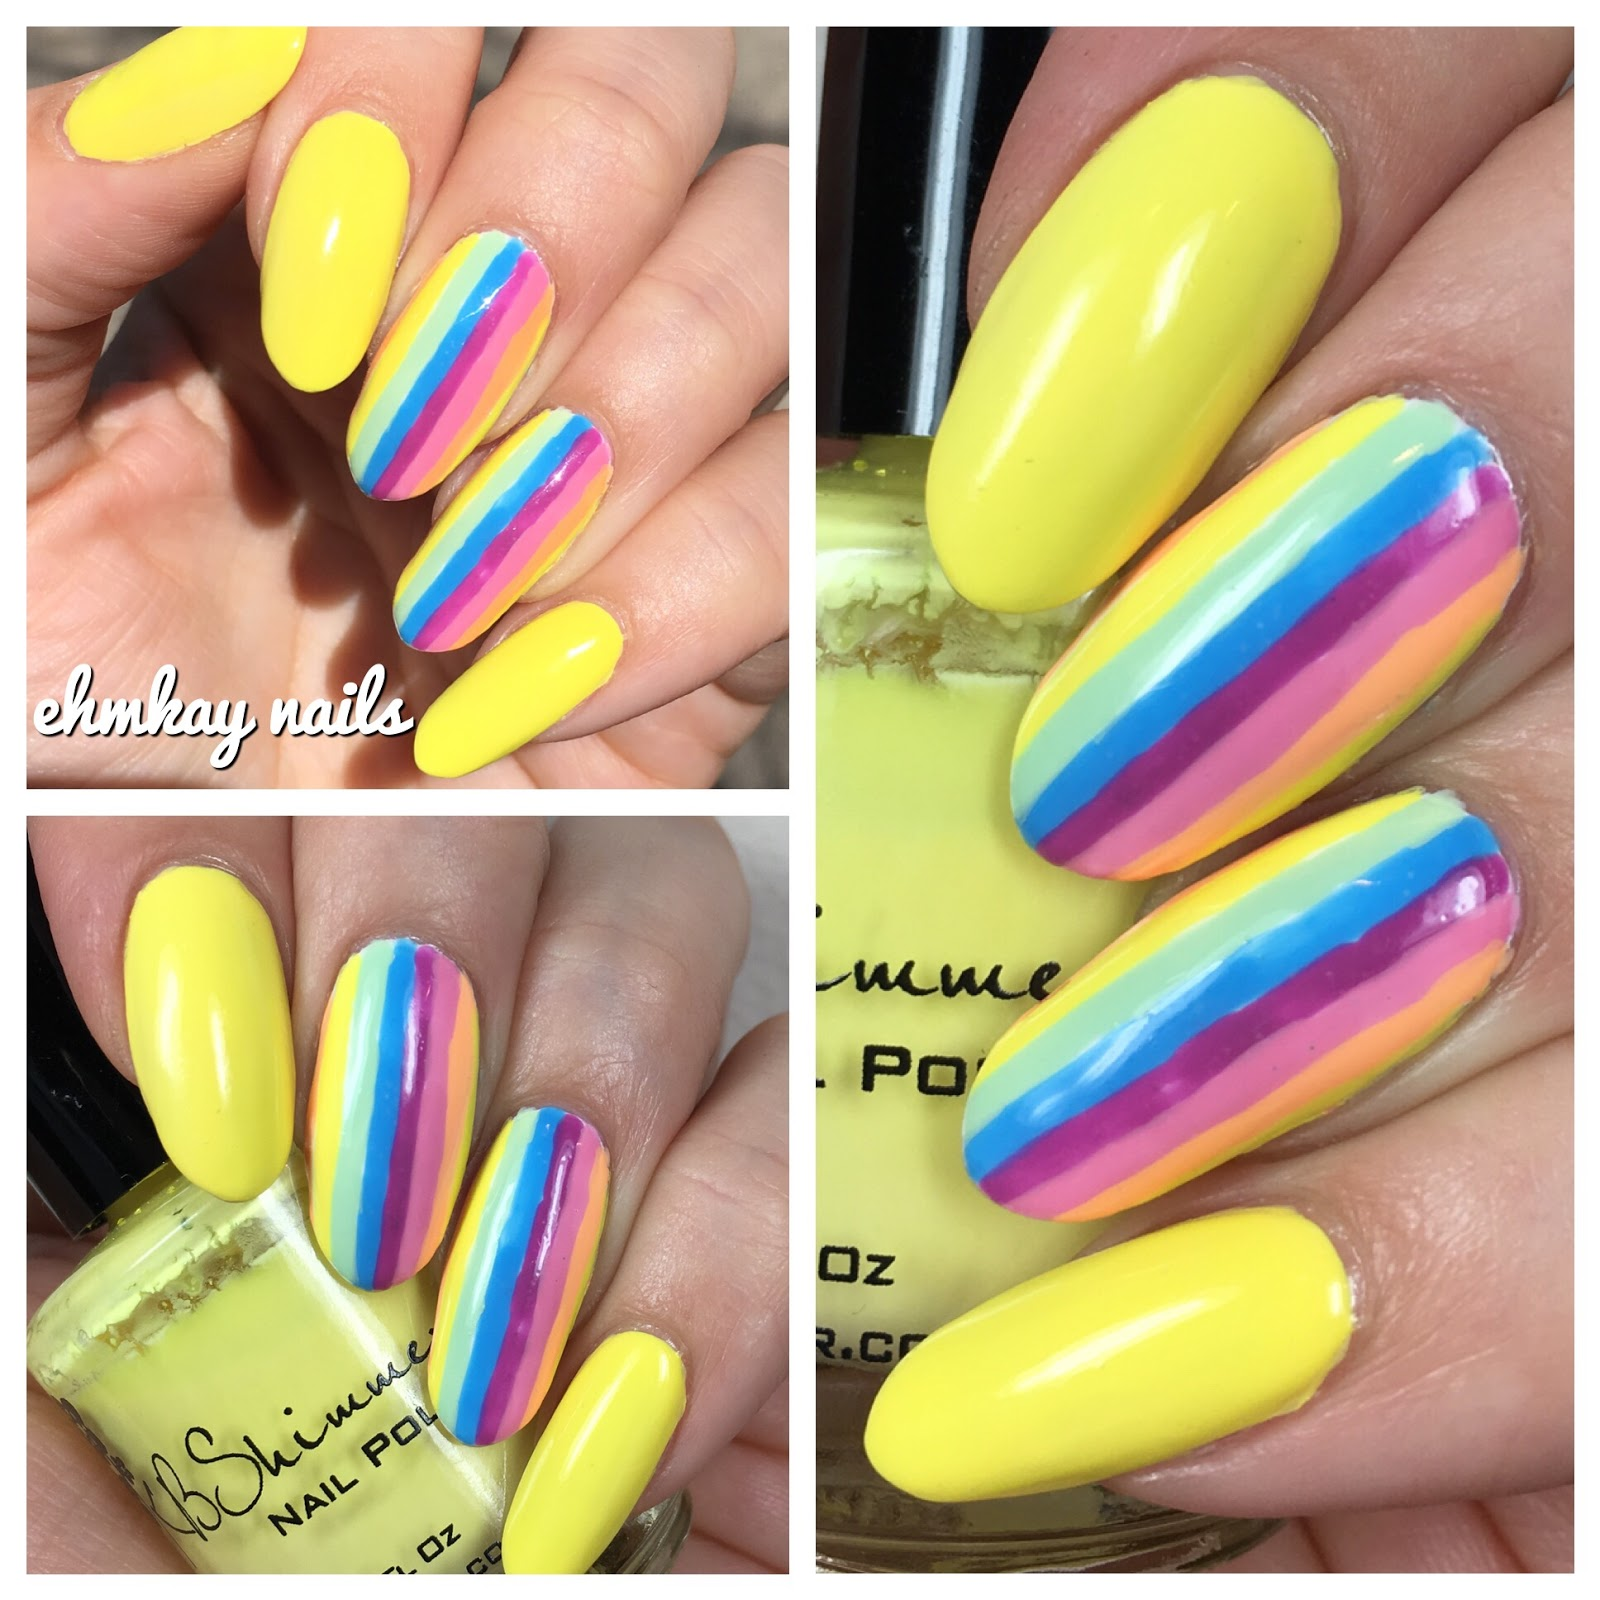 ehmkay nails: Pastel Neon Stripe Nail Art